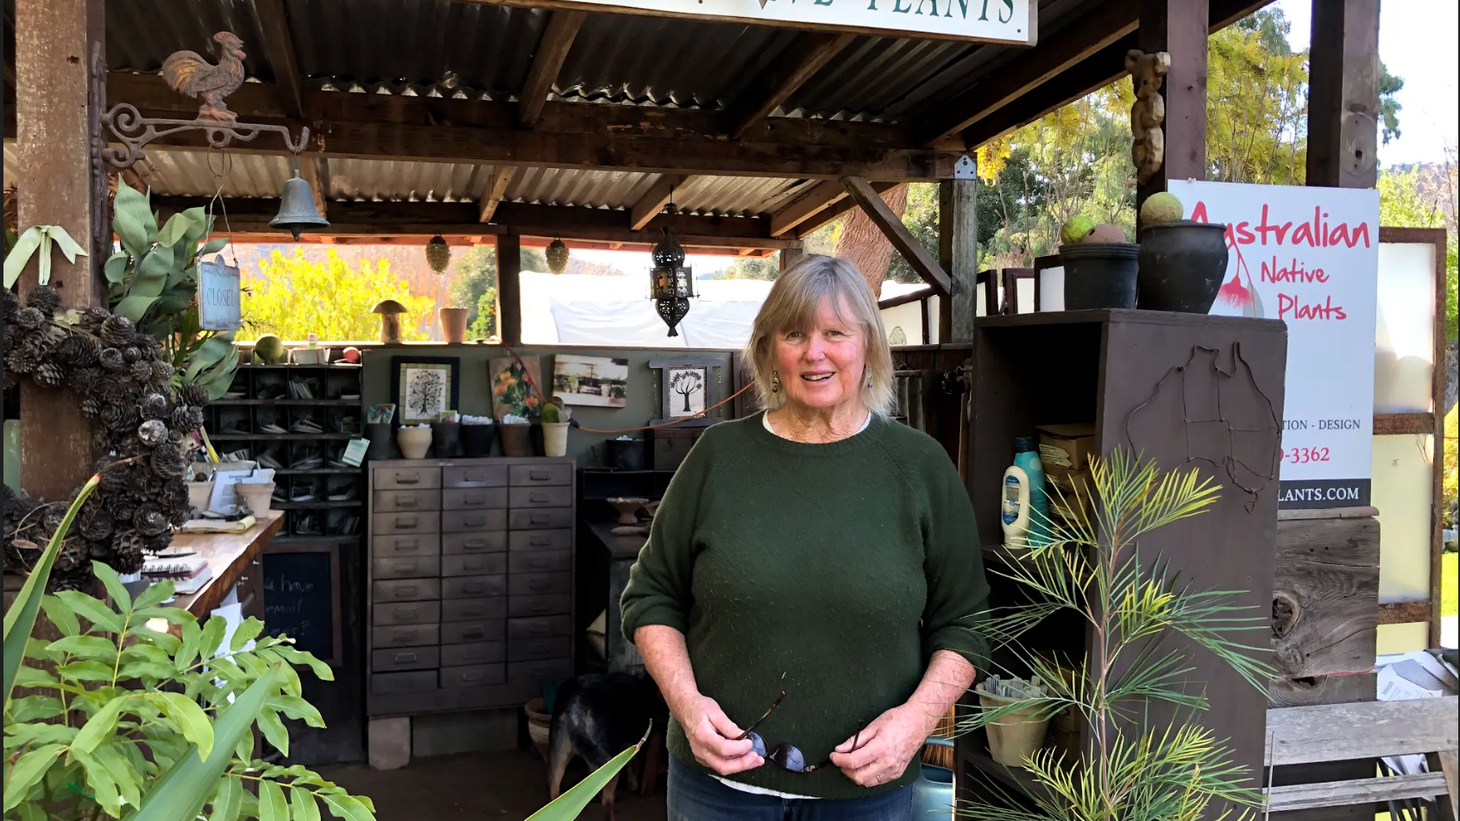 Jo O'Connell moved to California 27 years ago when she saw a gap in the Australian plant business.